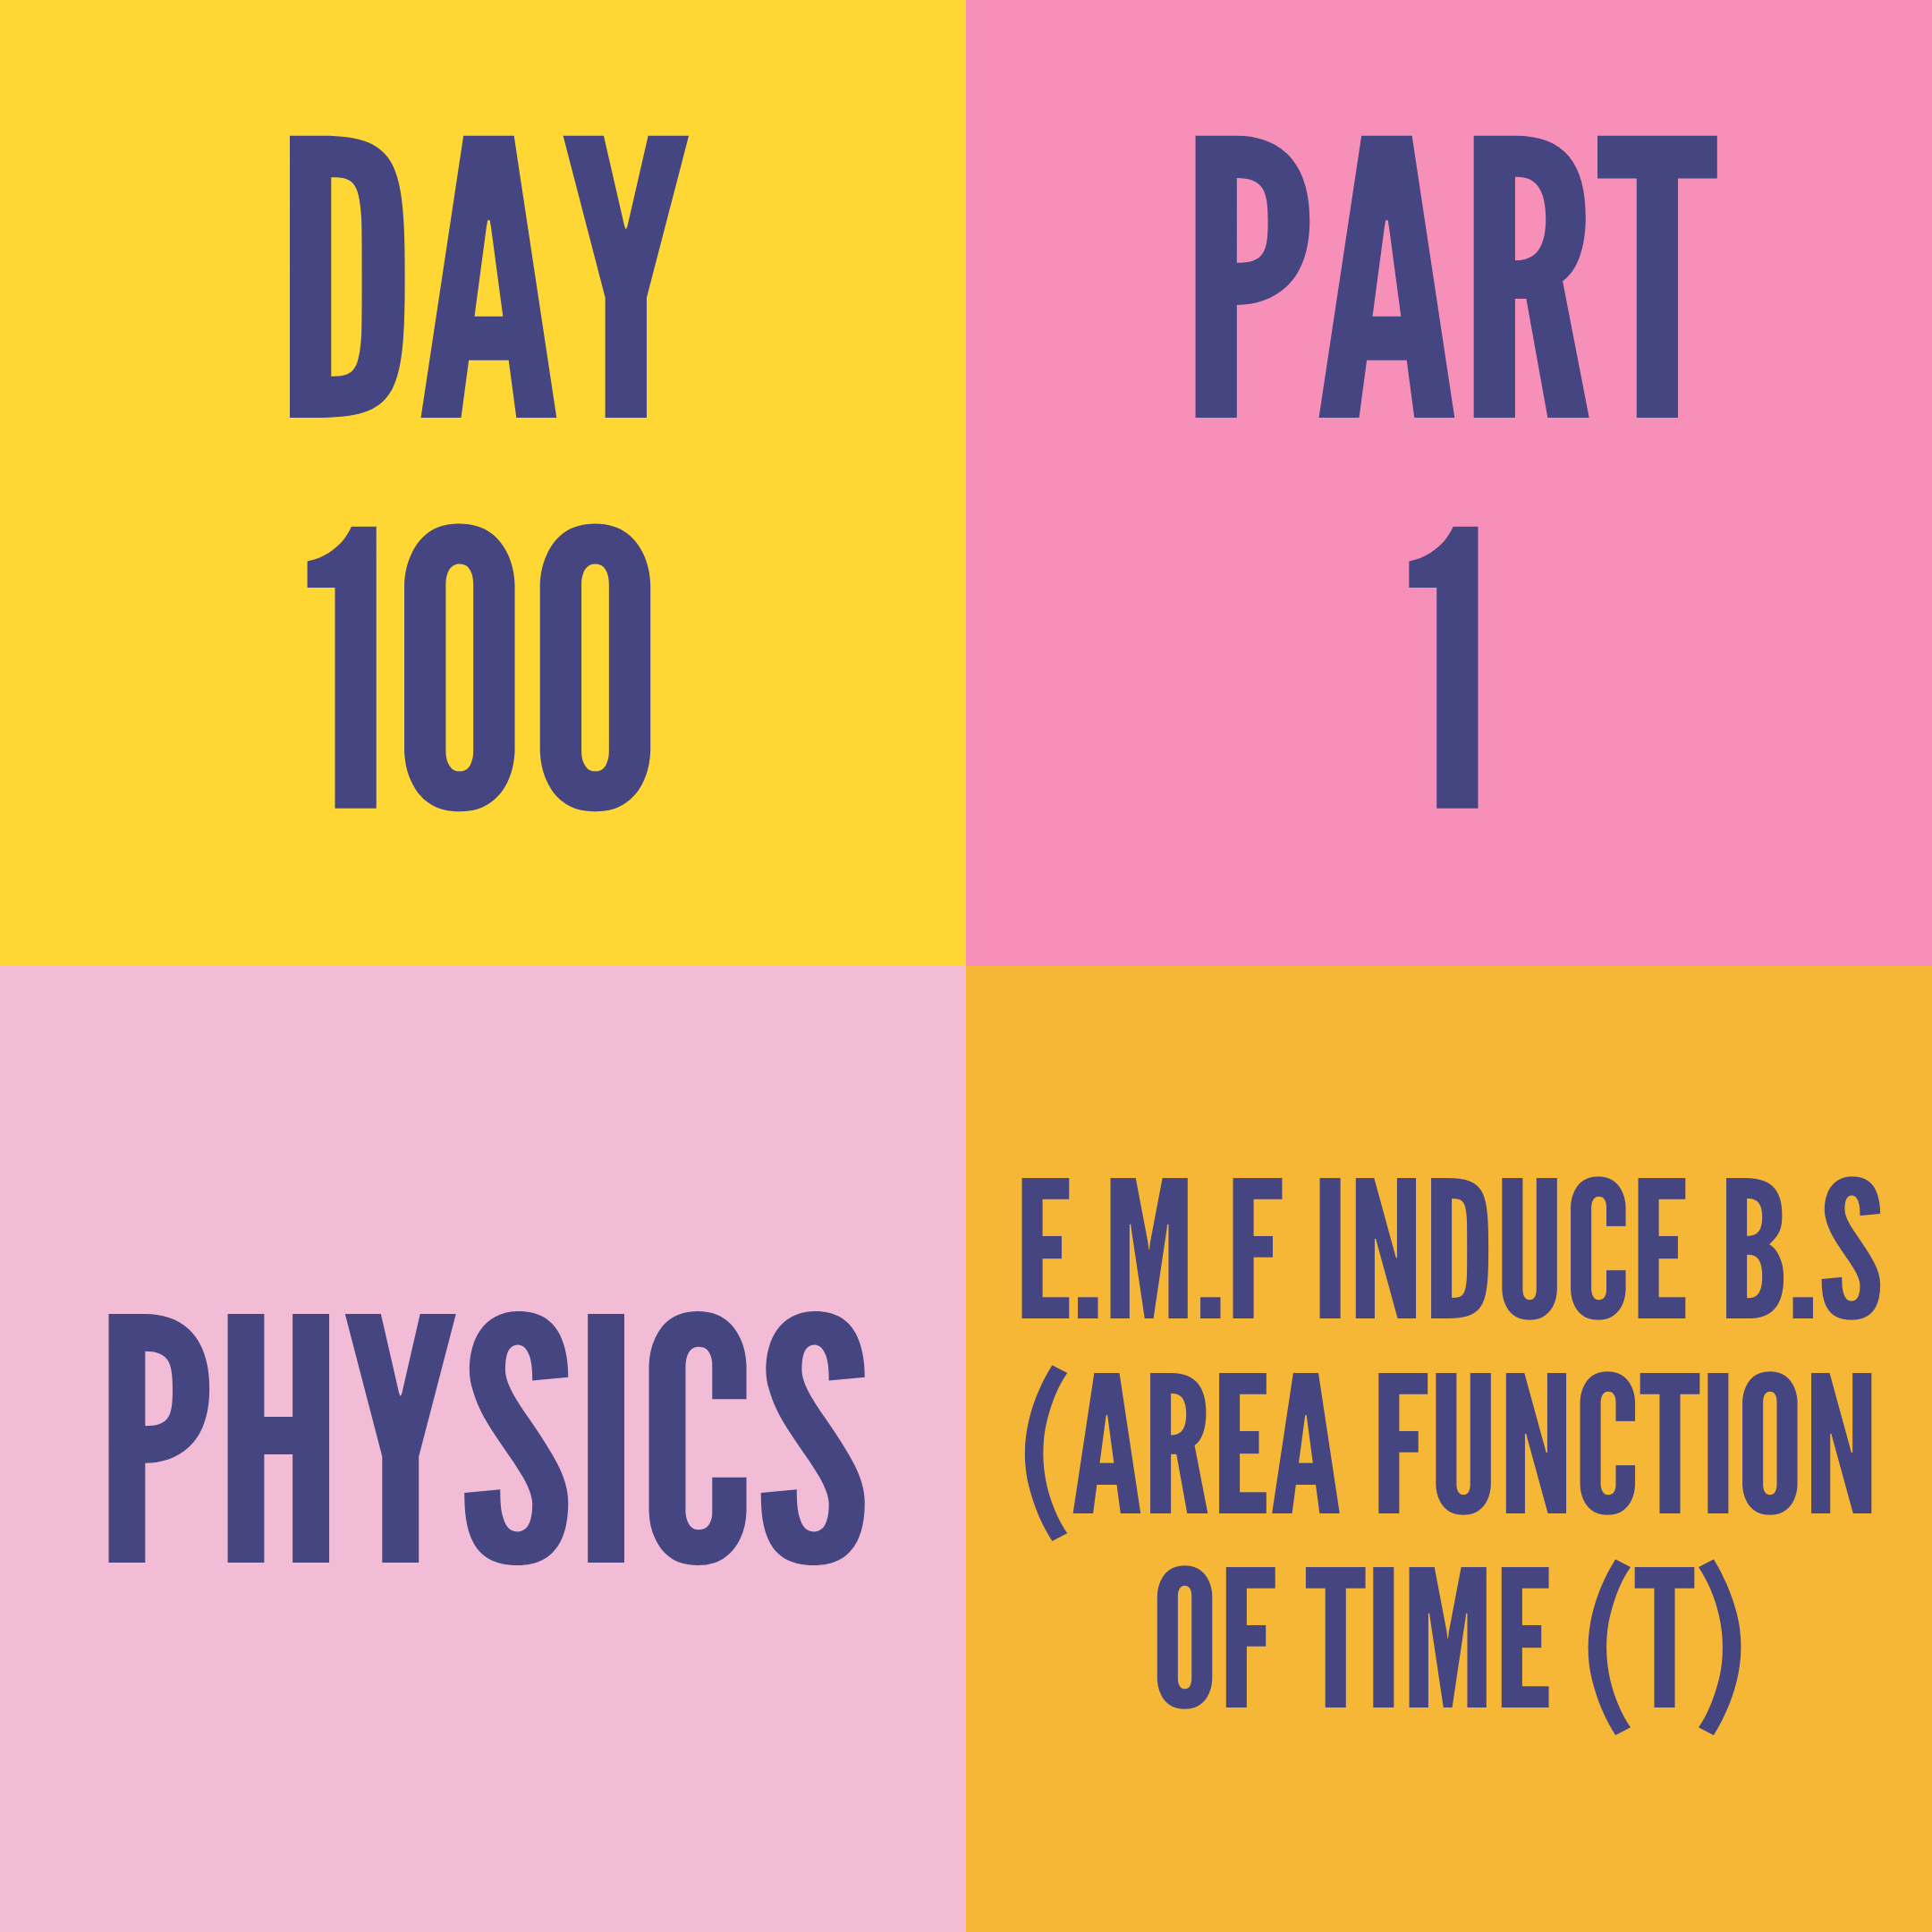 DAY-100 PART-1 E.M.F INDUCE B.S (AREA FUNCTION OF TIME (t)